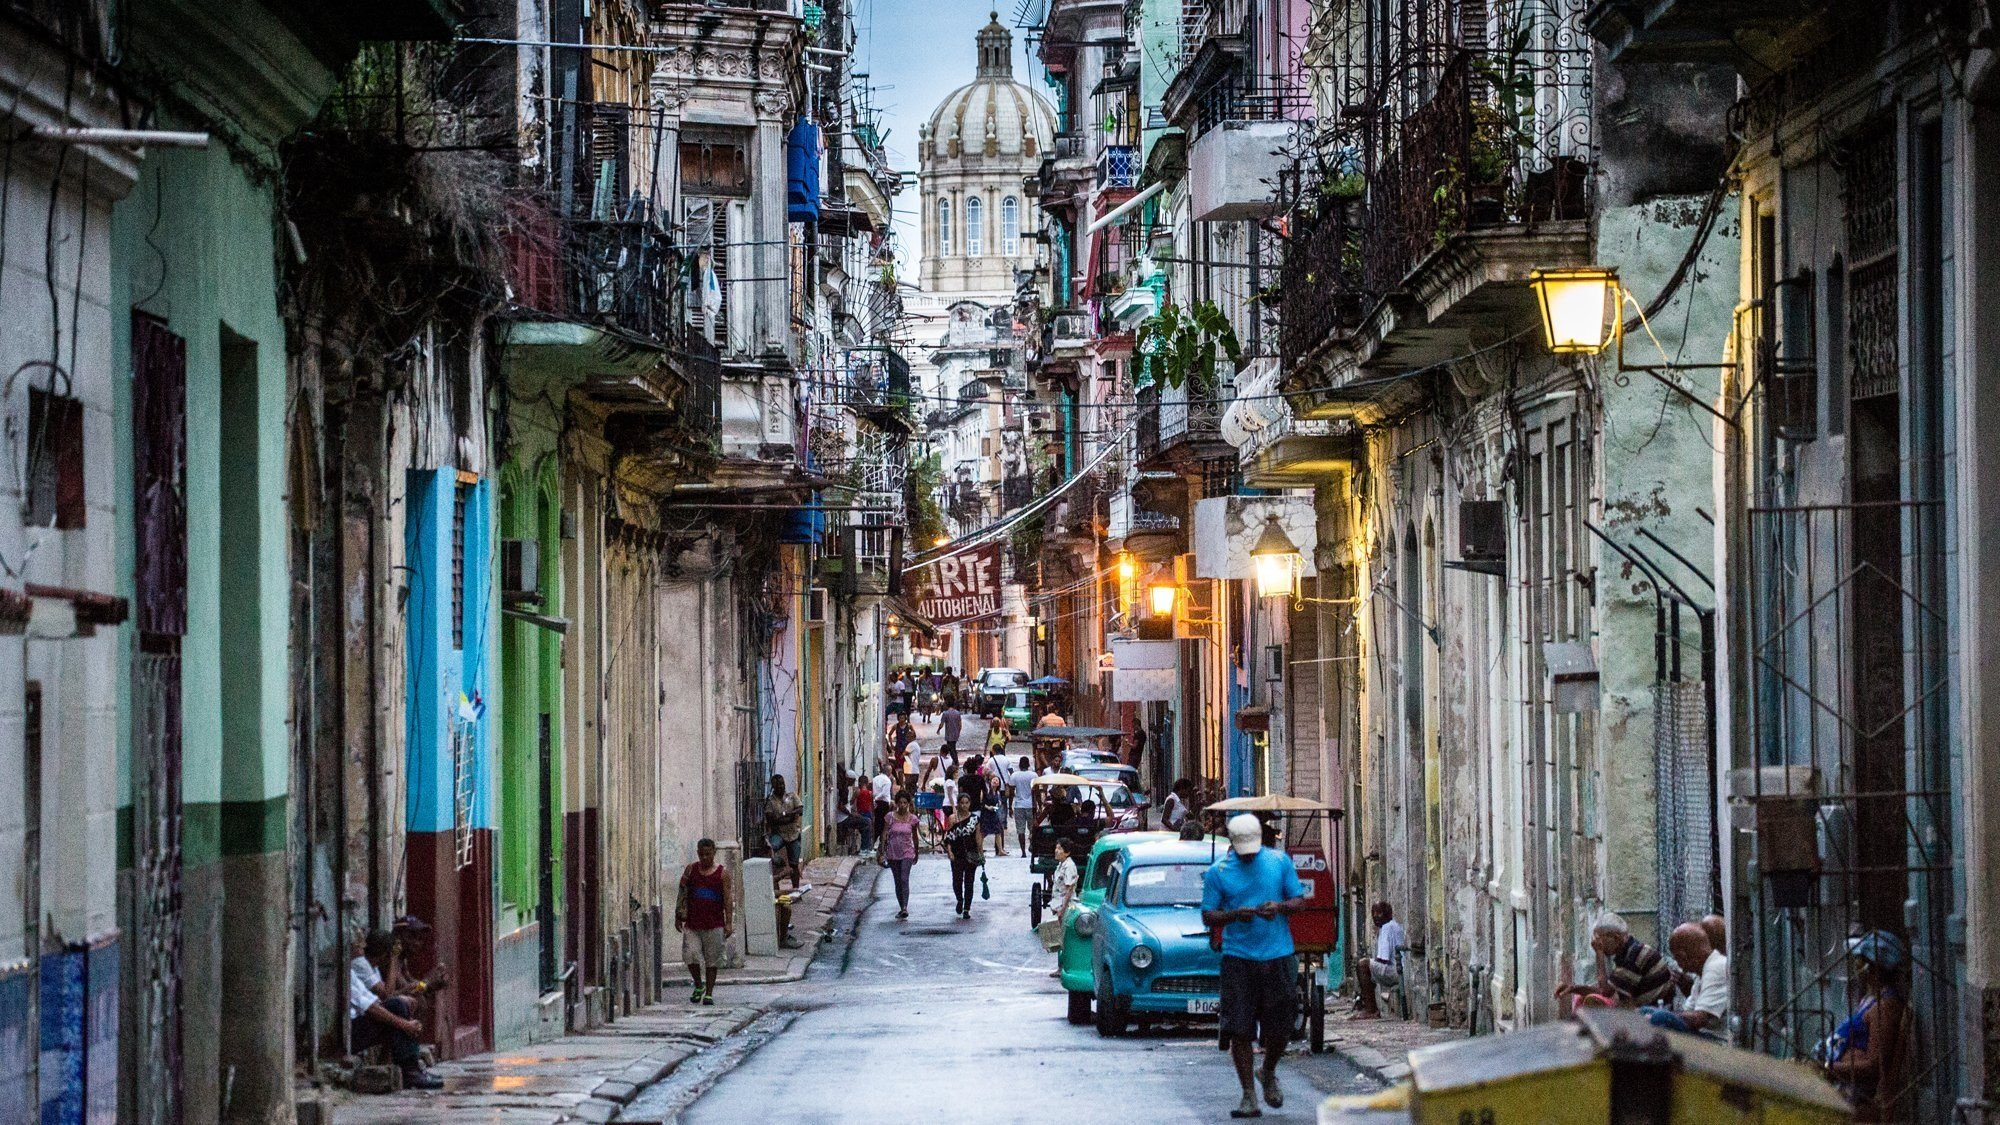 Americans flock to Cuba in post-rapprochement tourism boom